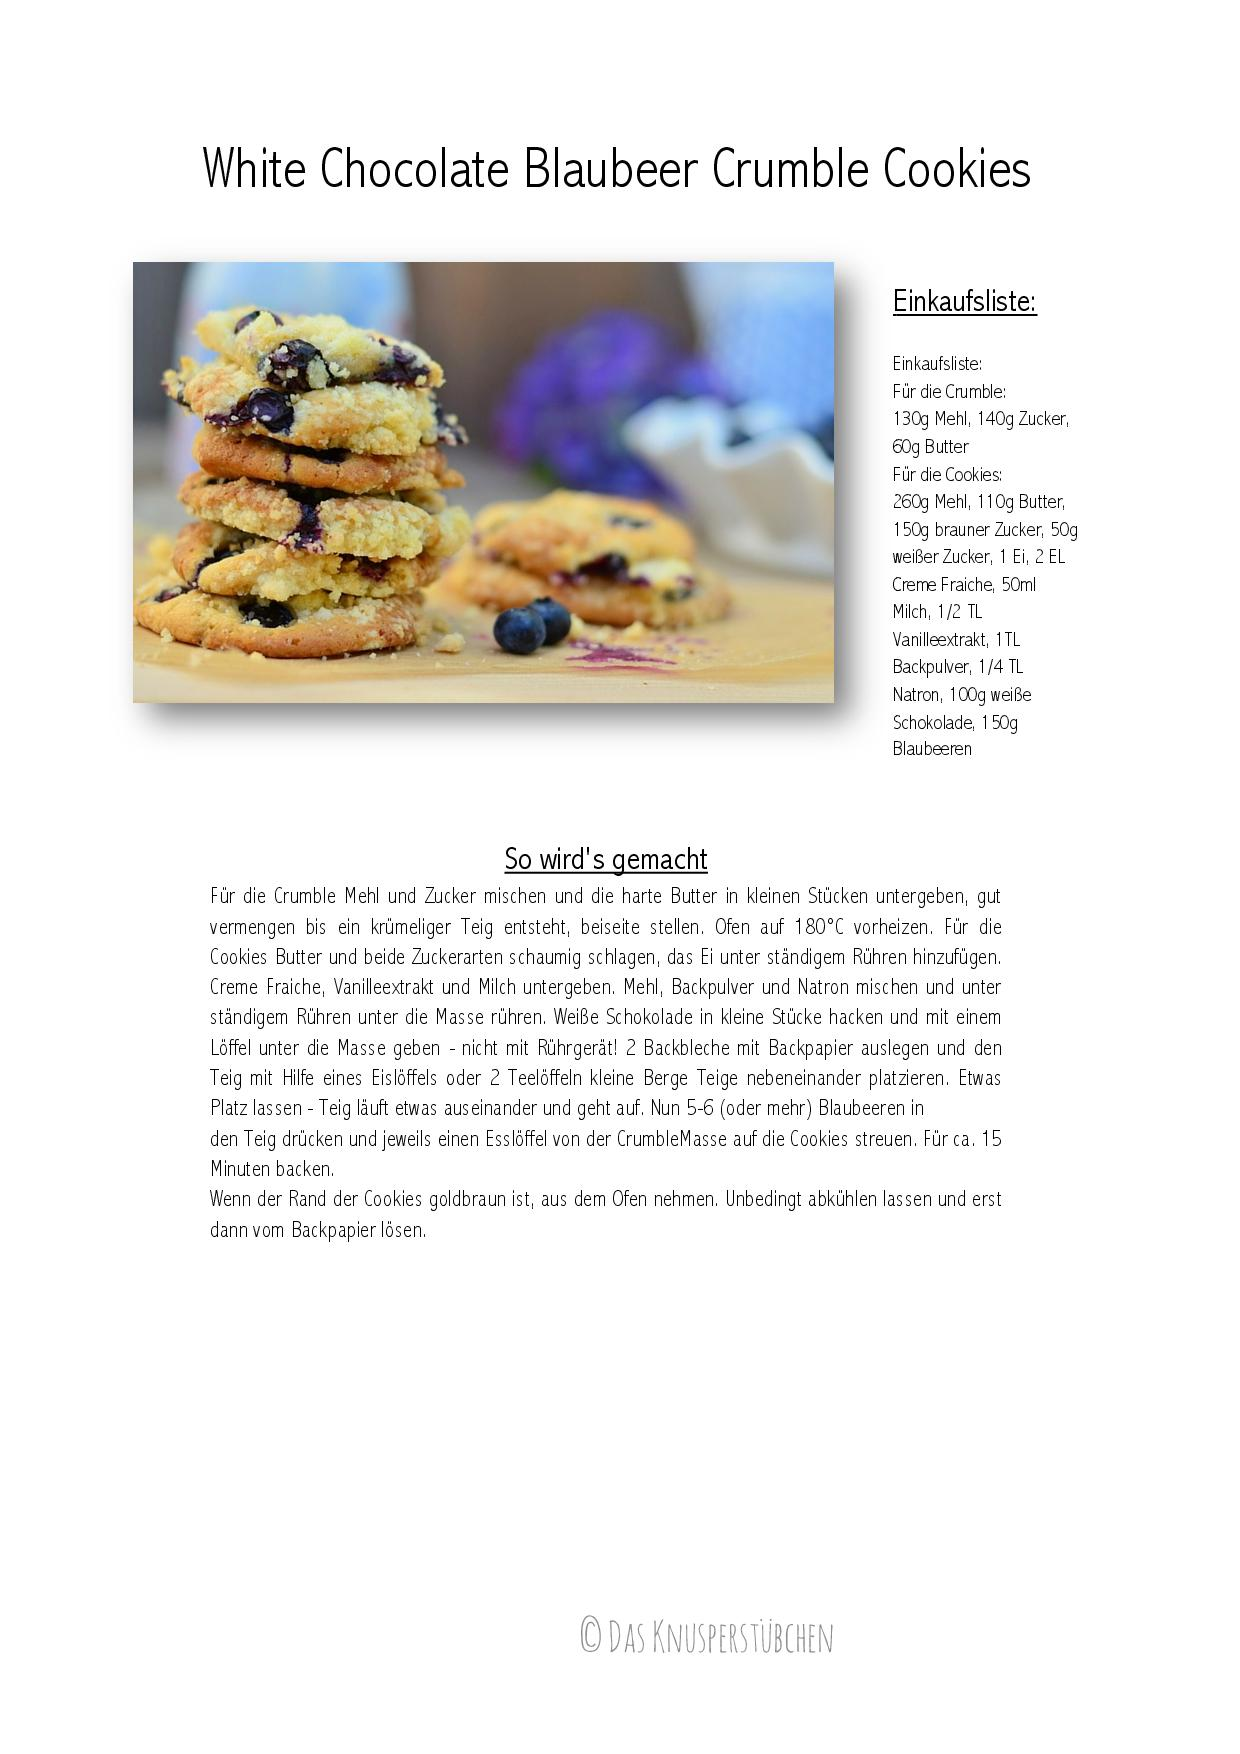 White Chocolate Blaubeer Crumble Cookies-001